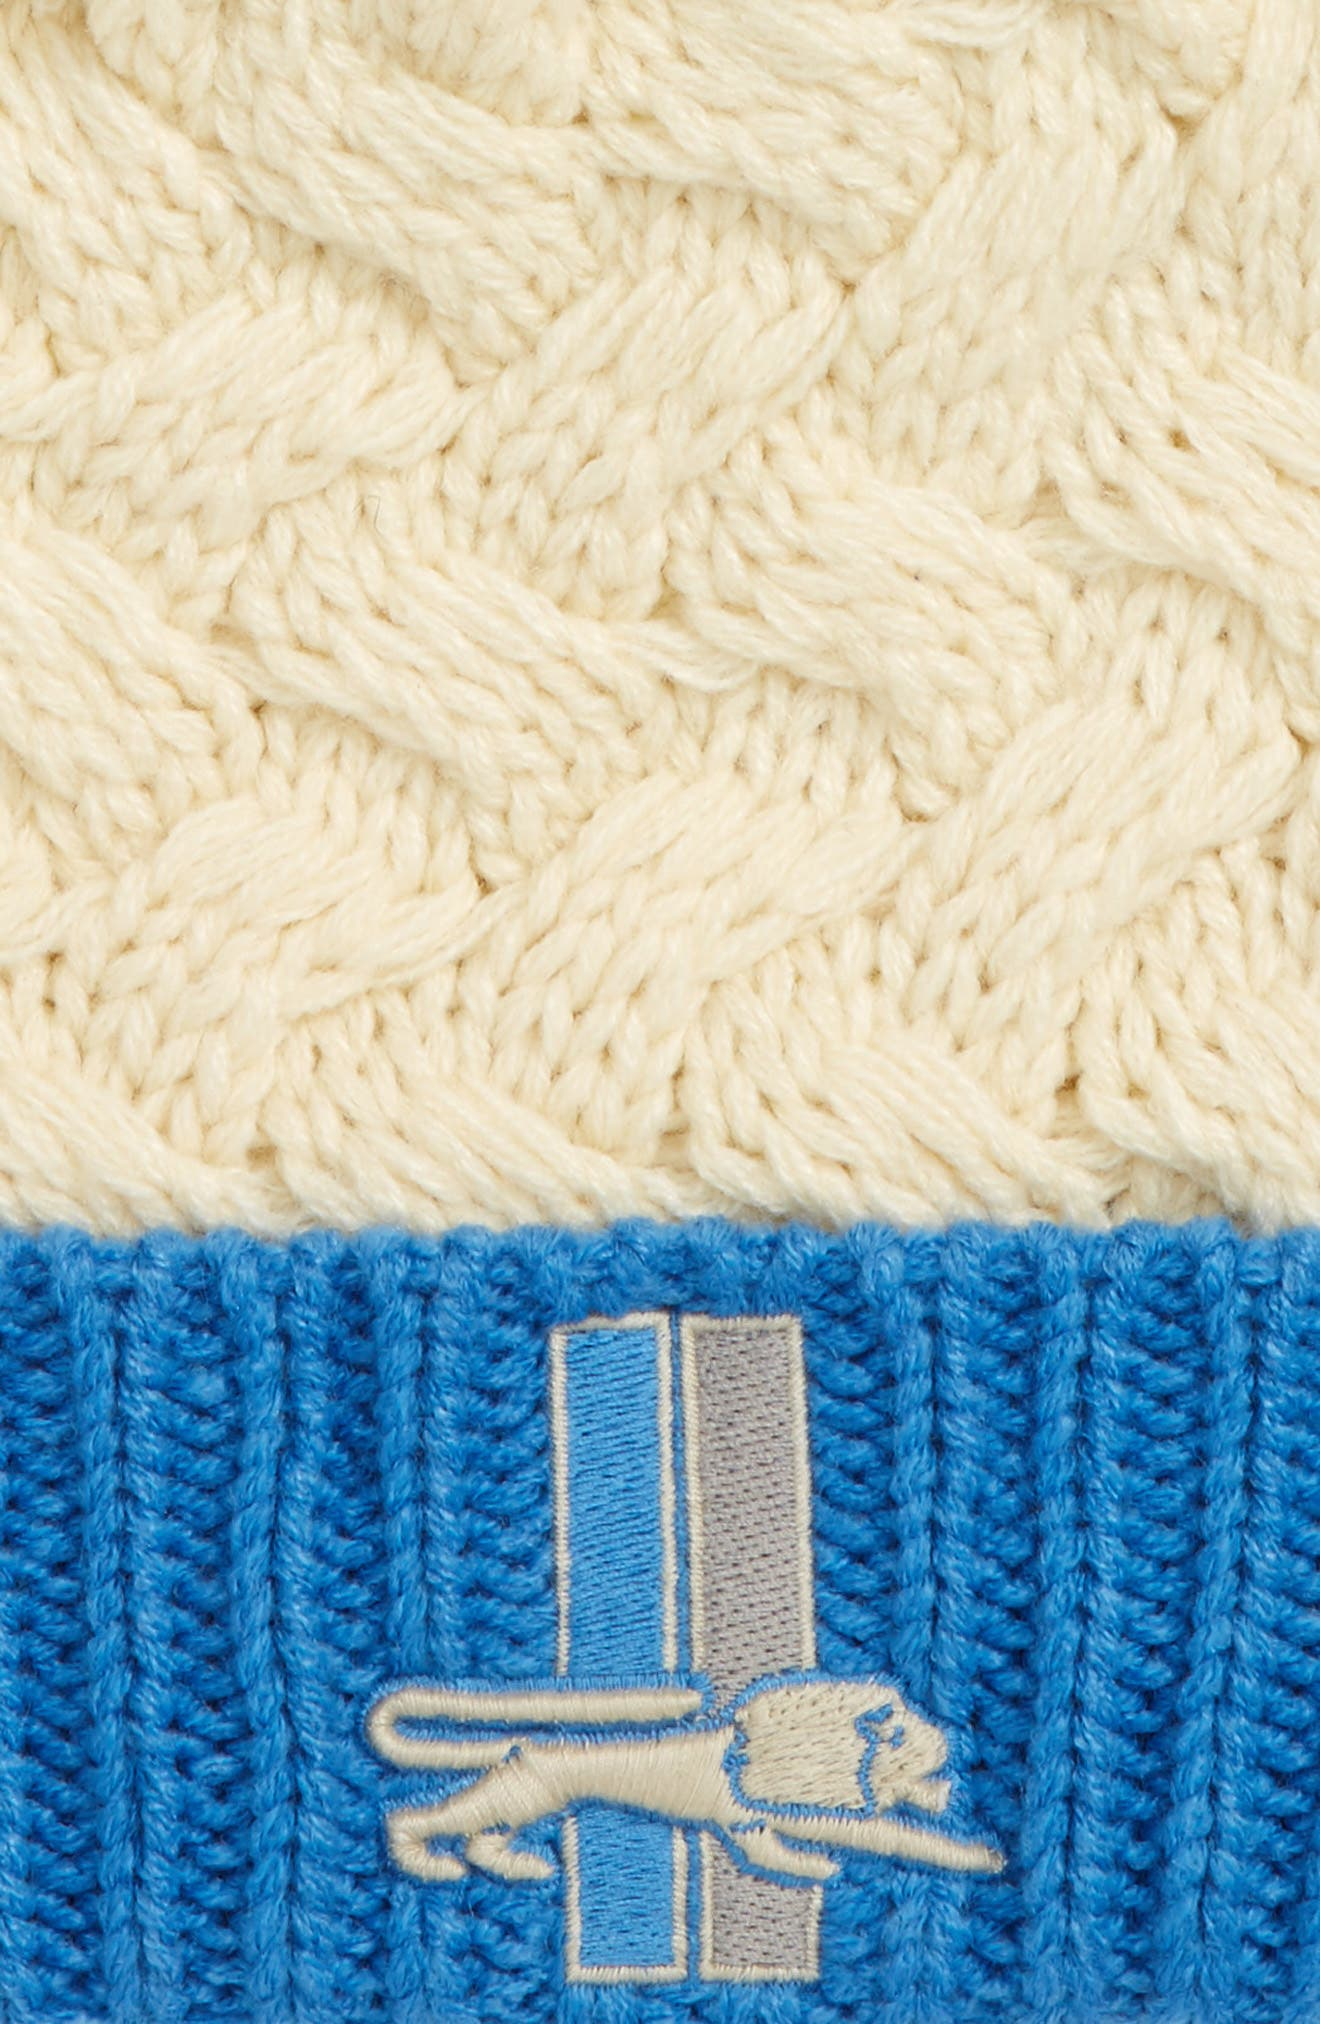 Matterhorn Detroit Lions Pom Beanie,                             Alternate thumbnail 2, color,                             Open White